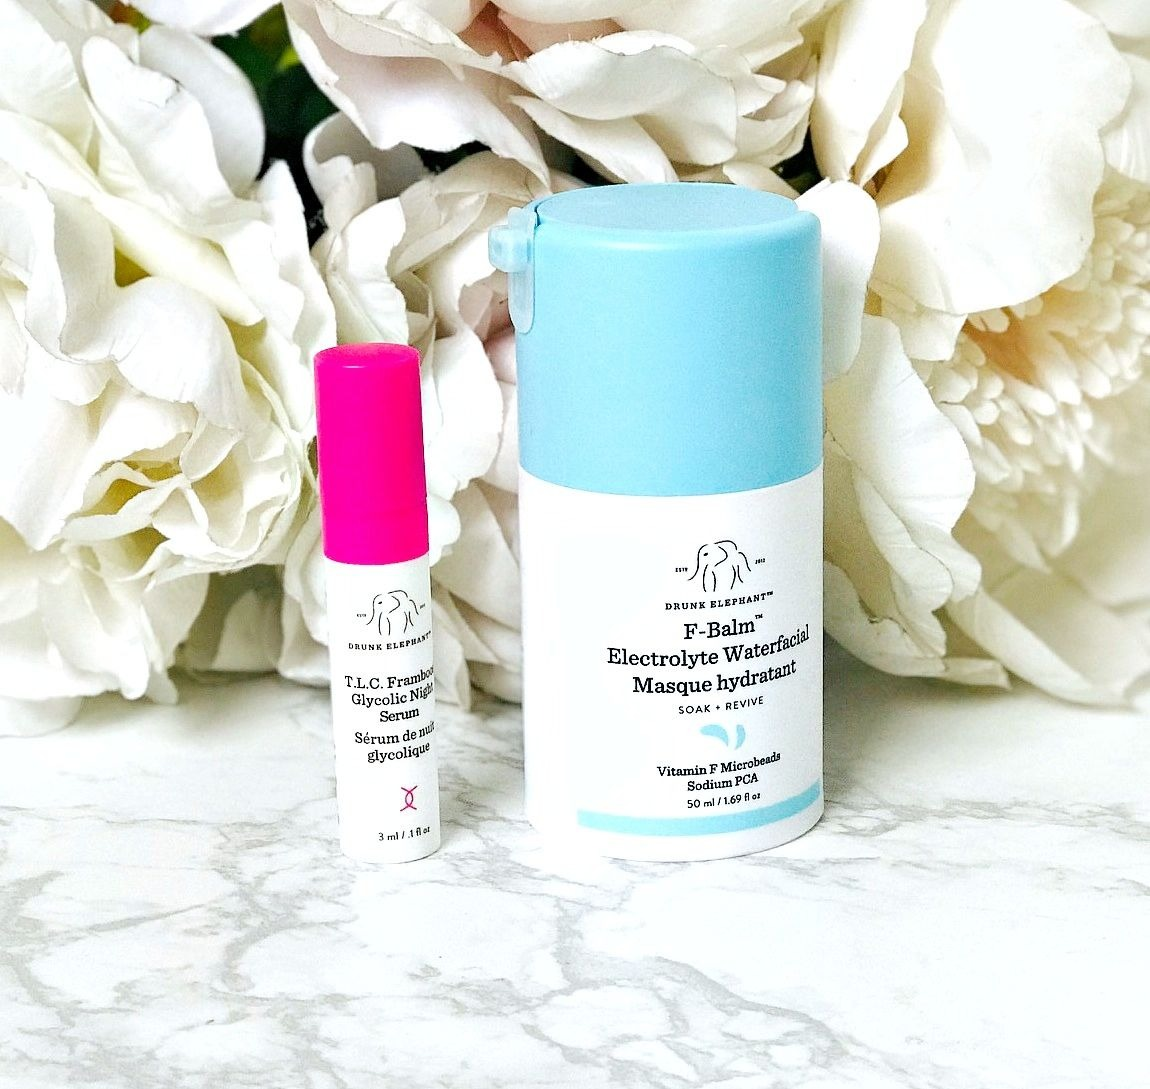 Drunk Elephant F-Balm Electrolyte Waterfacial Review, Skincare, Worth the hype?